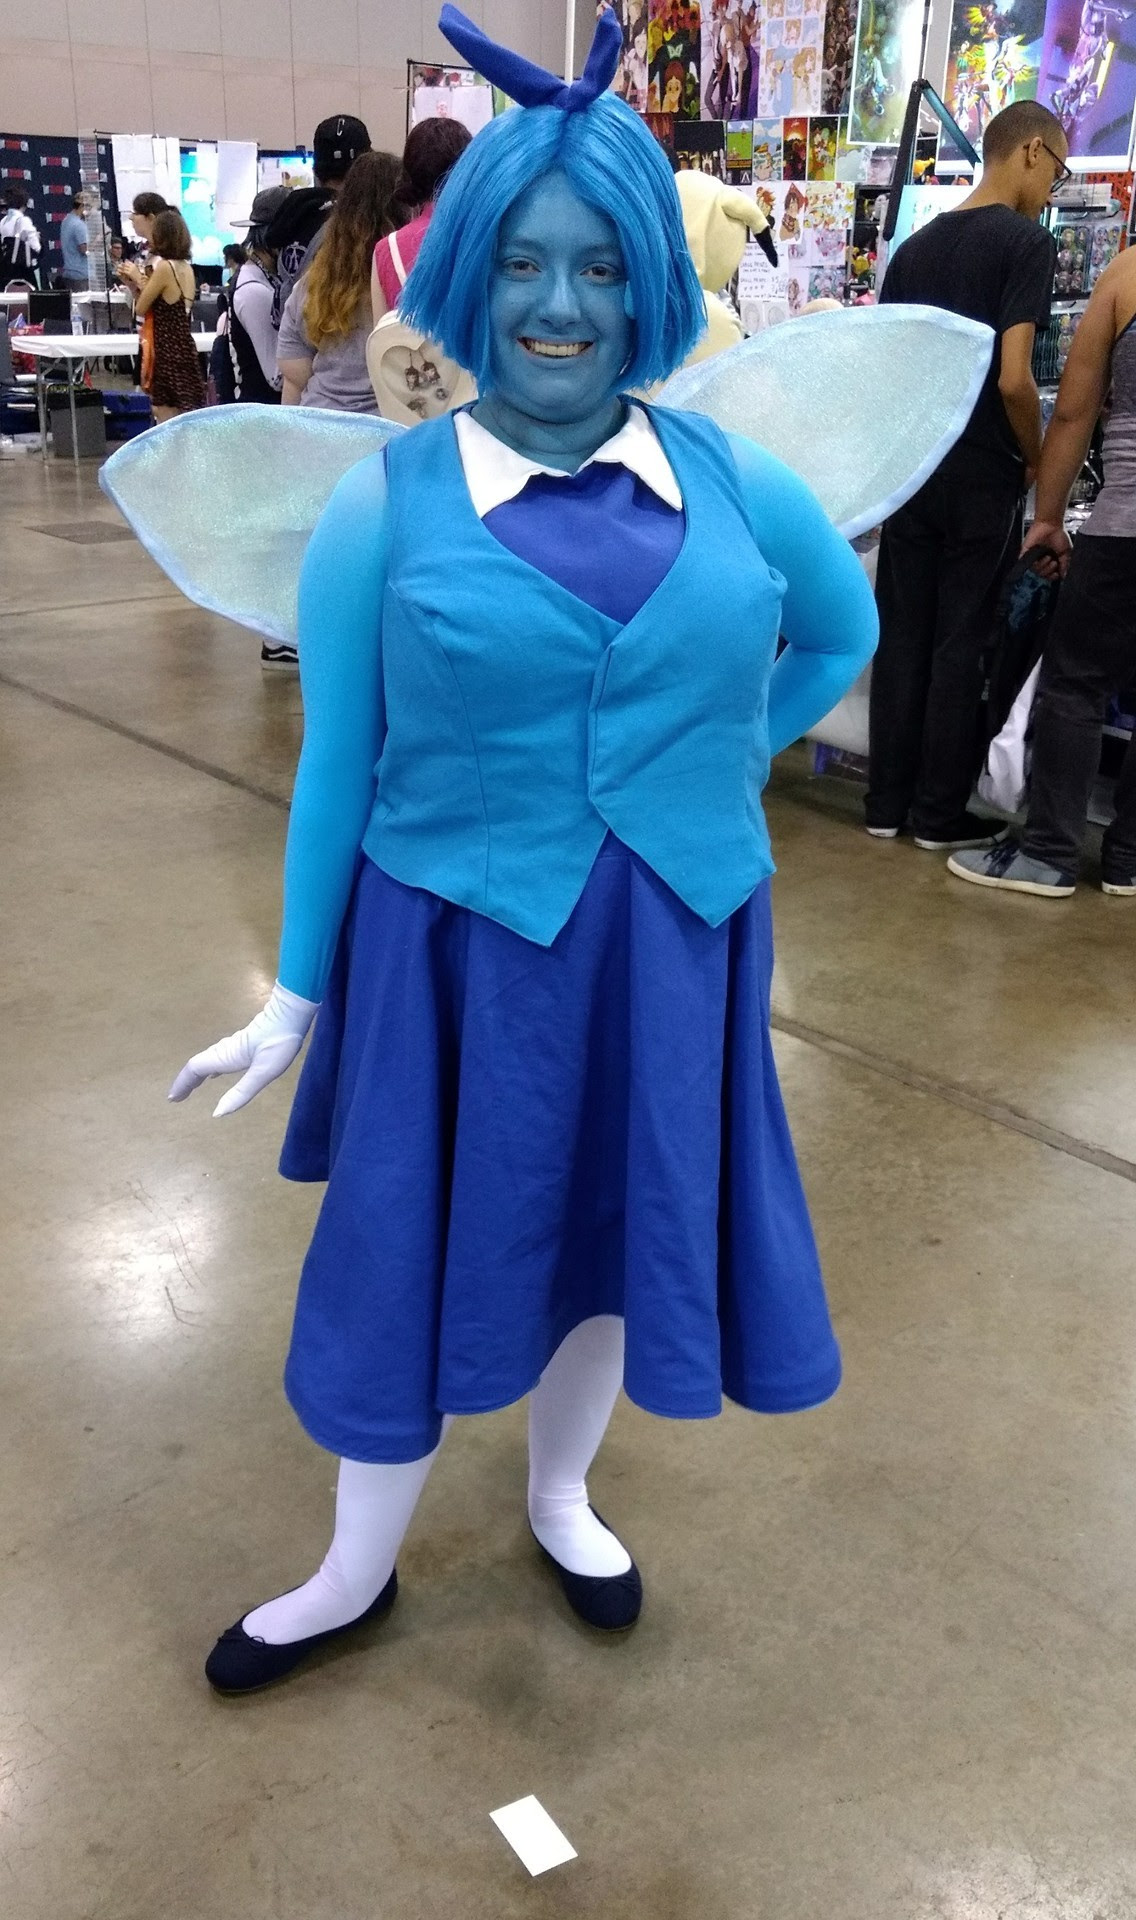 Snaps of the Steven Universe cosplays I saw at animenext this weekend!! I caught a few of you with wigs off getting food etc but I love documenting cosplay and you all still looked lovely I...